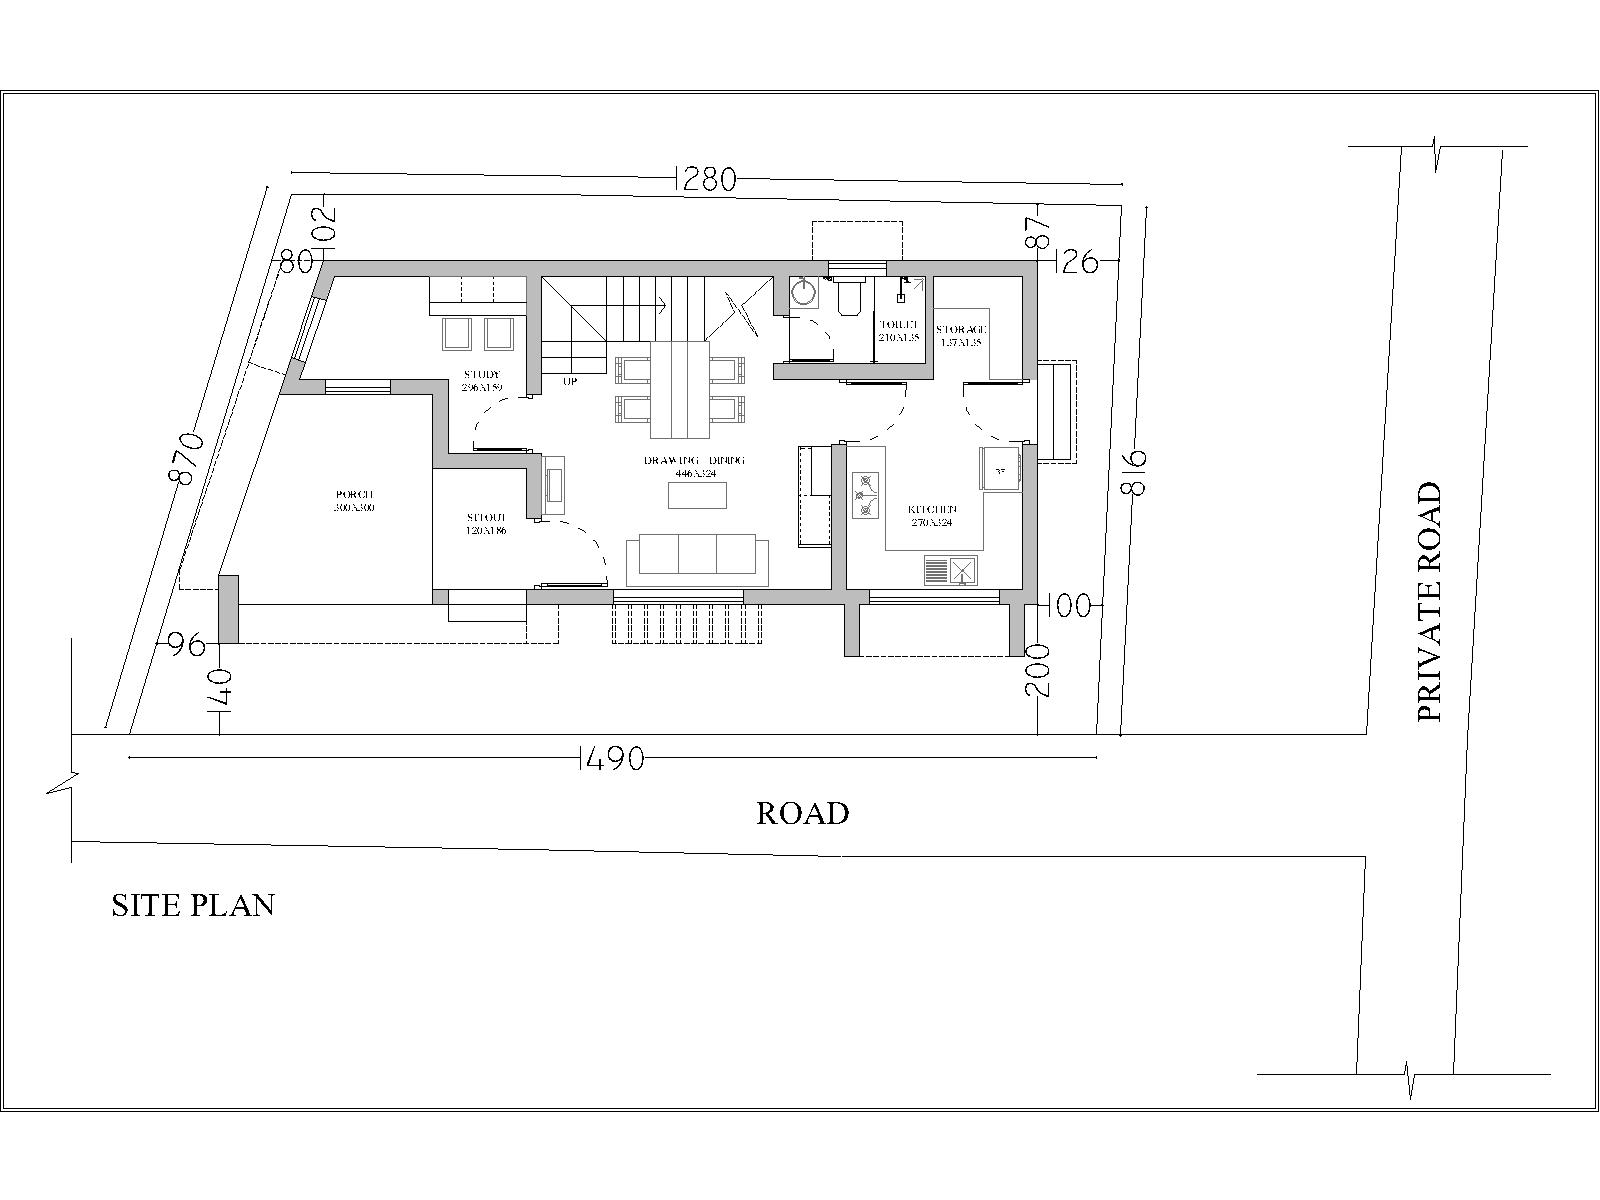 Top architect trivandrum for House site plan